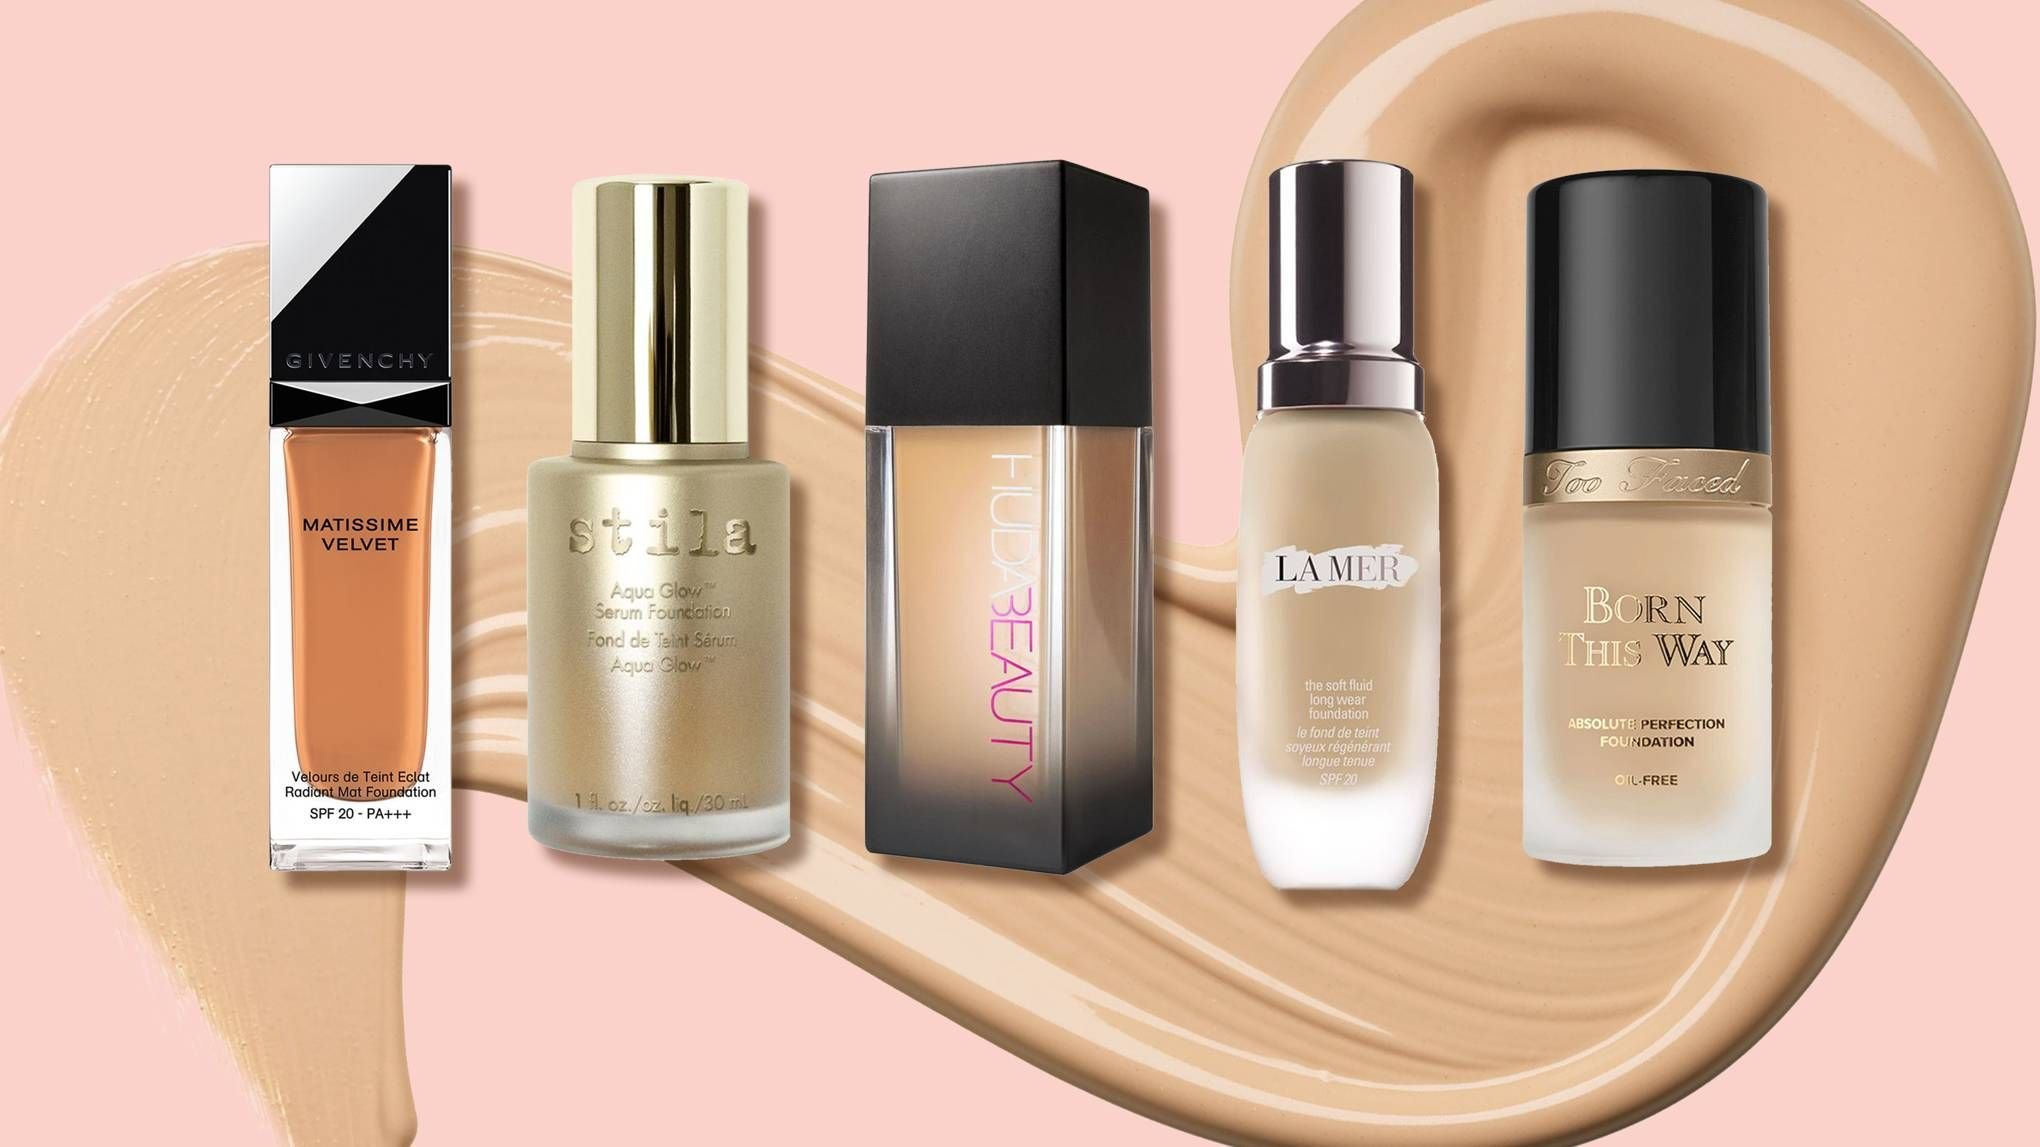 These are the holy grail foundations that we'd fully